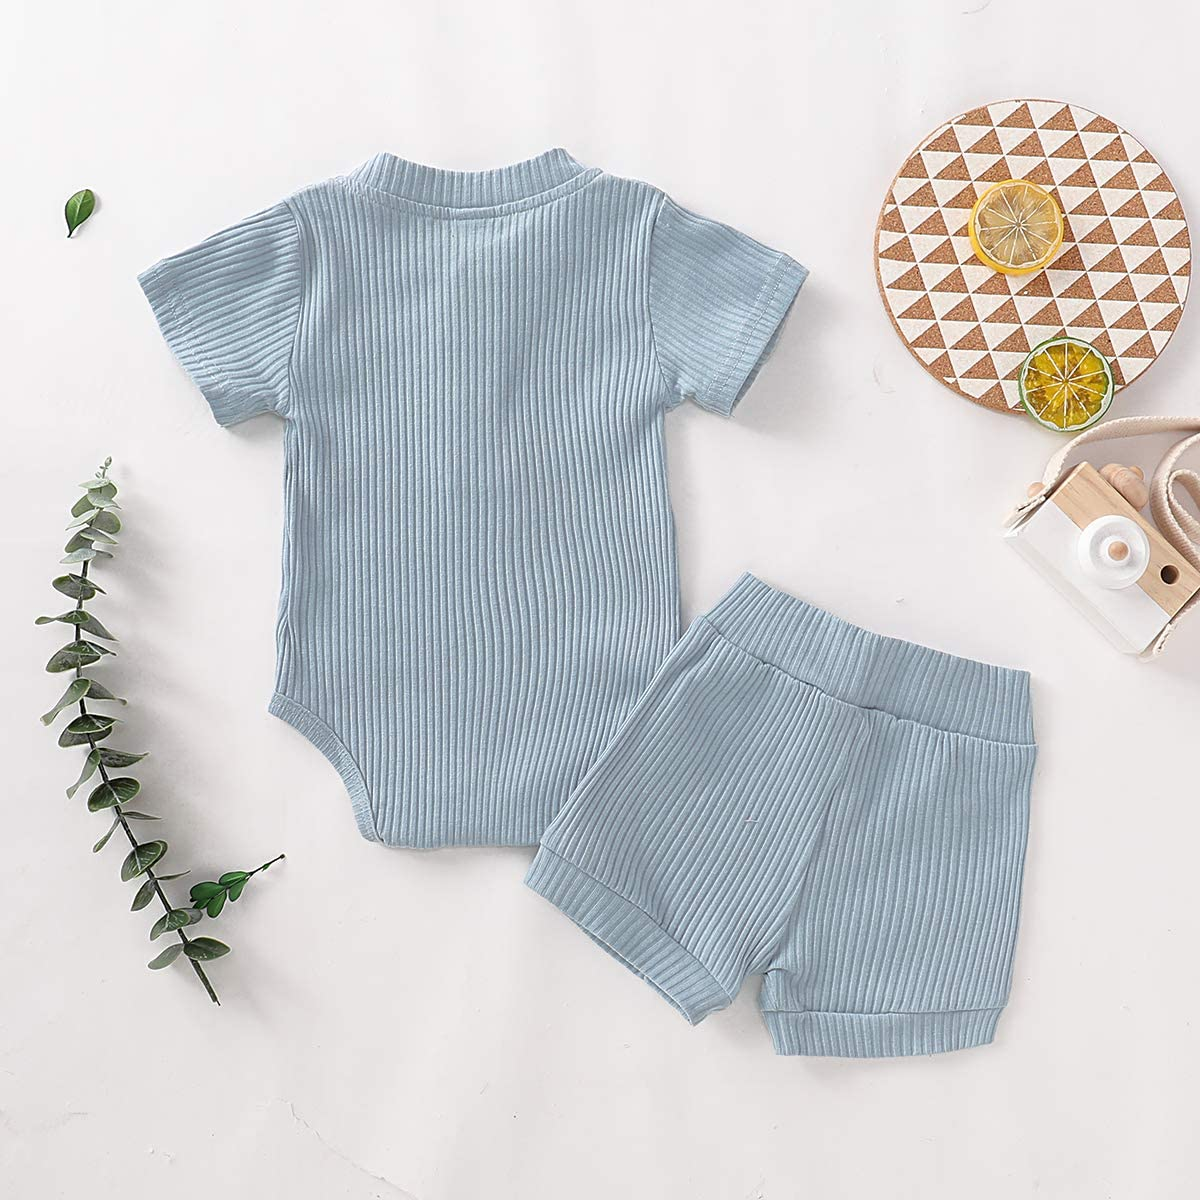 Shorts Toddler Outfits 2Pcs Newborn Baby Girls Boys Summer Clothes Sets Short Sleeve Solid Romper